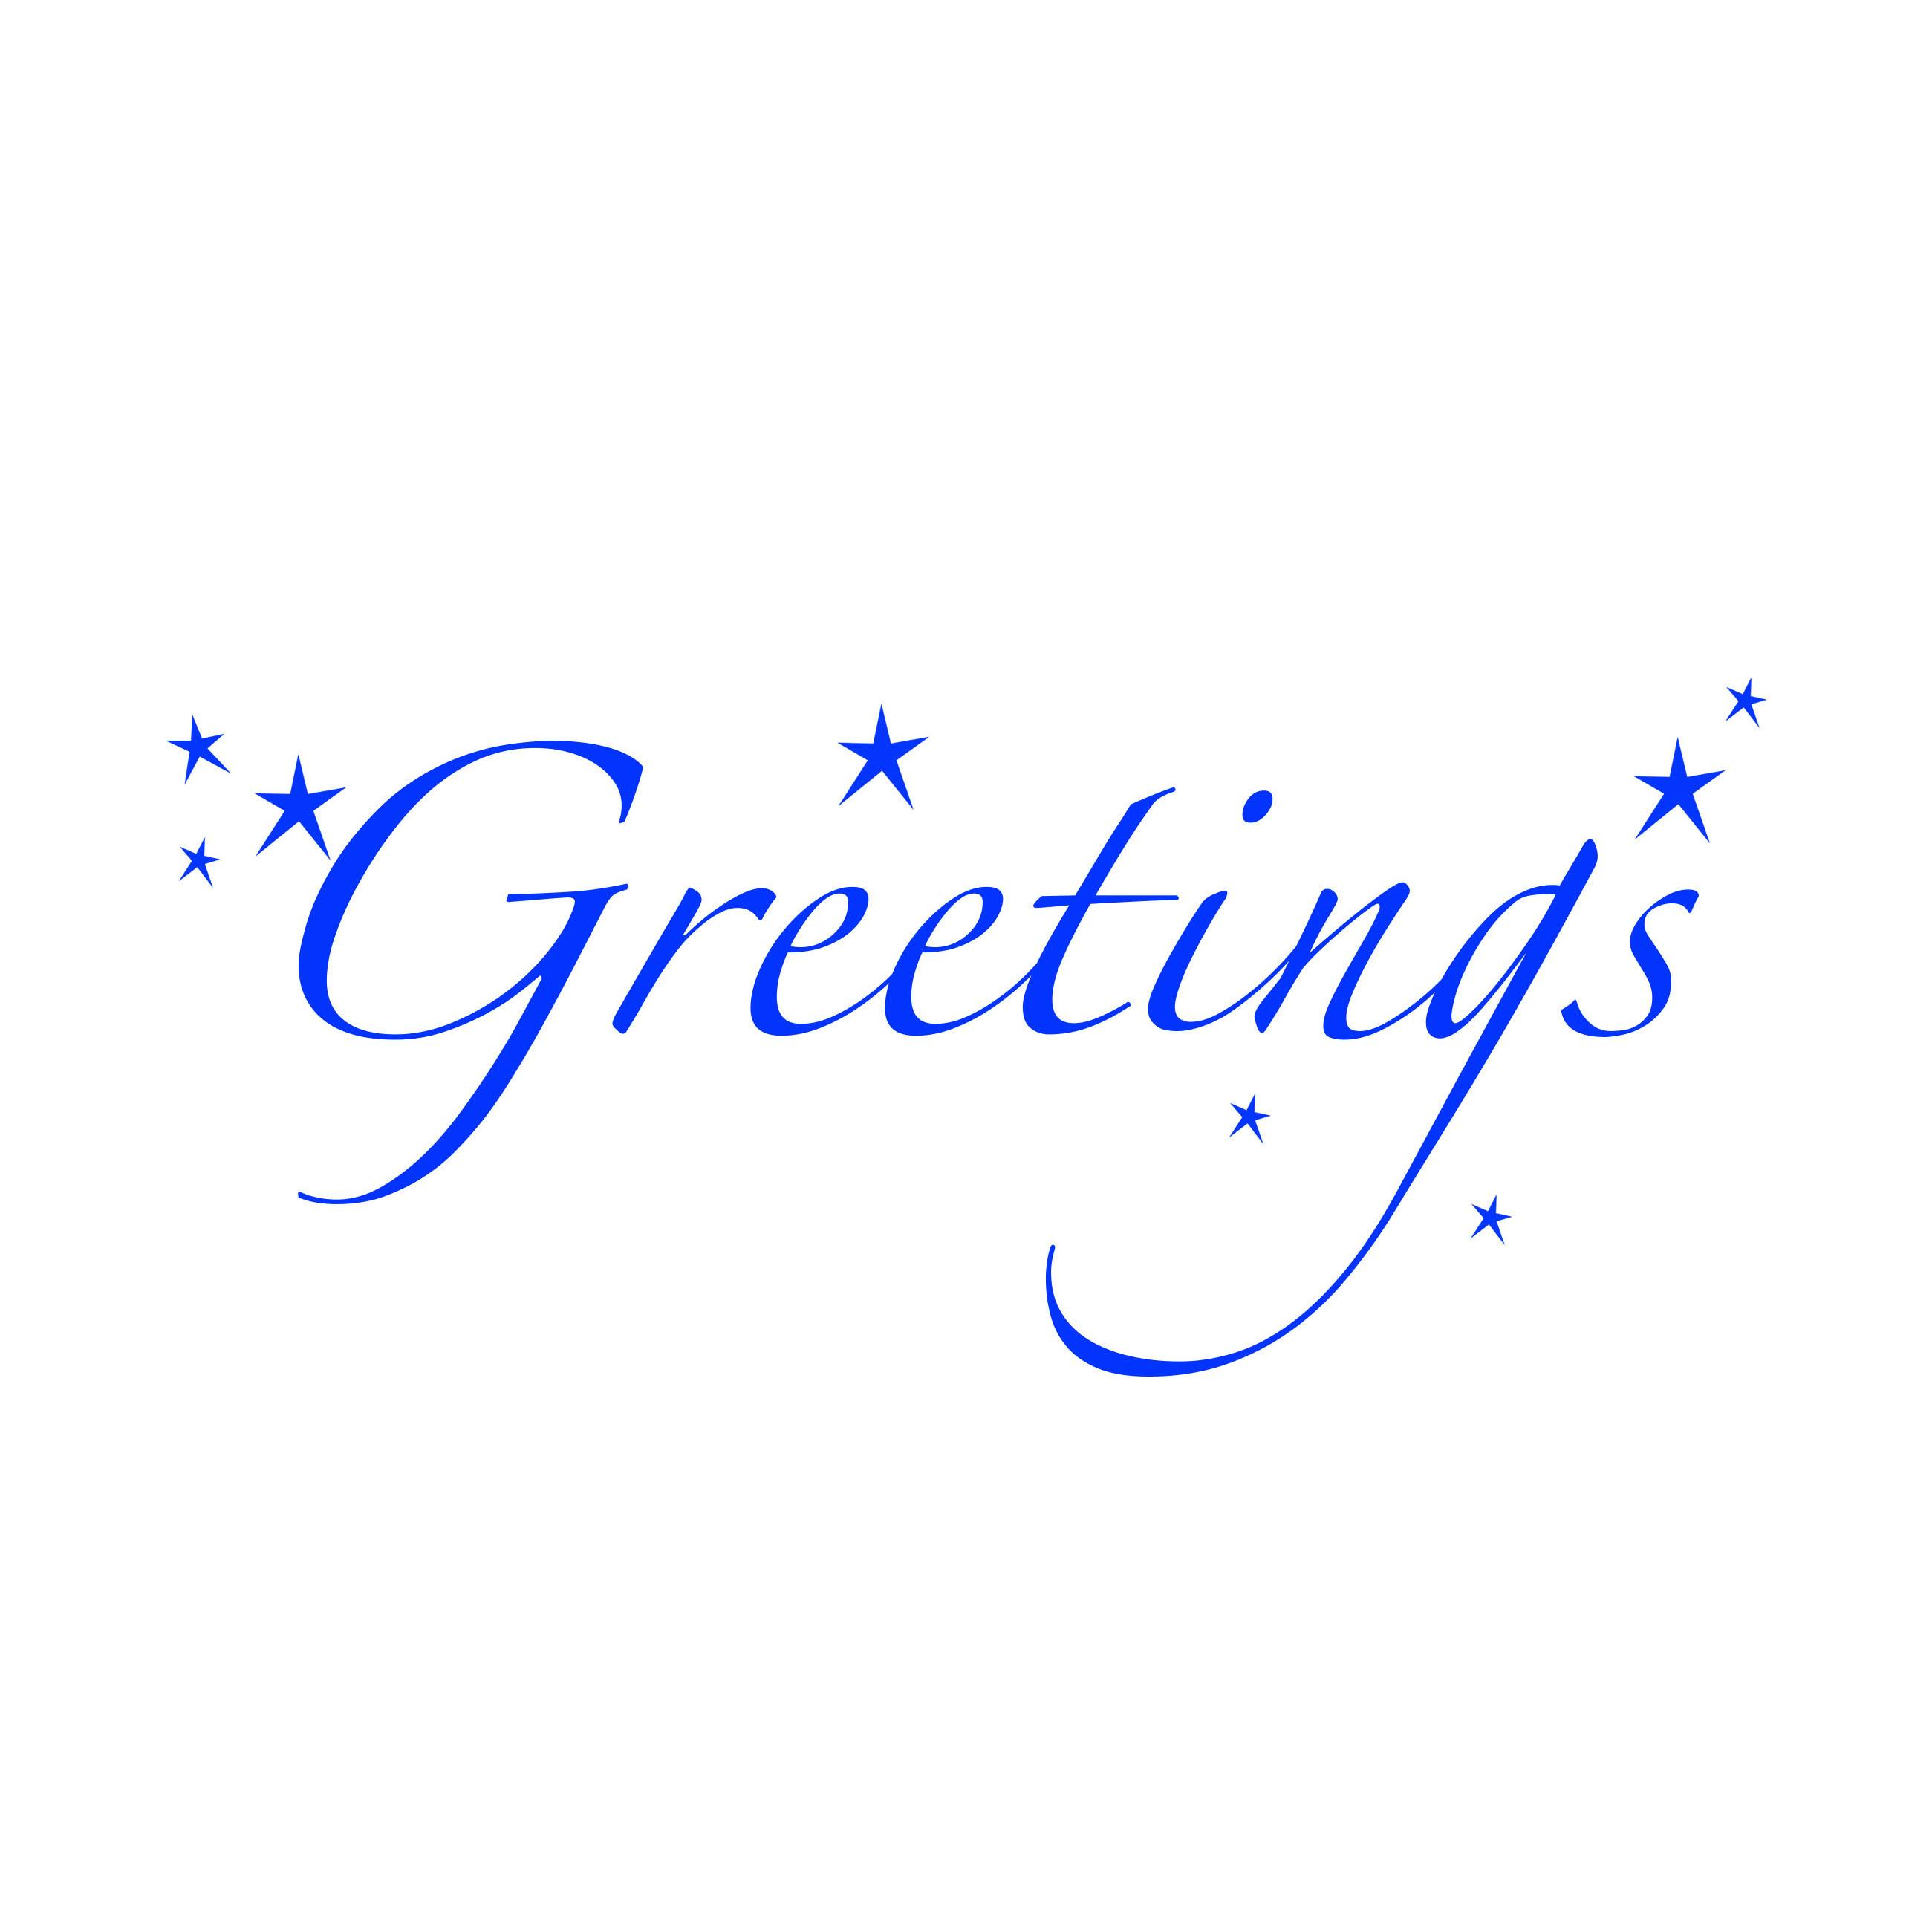 Greetings cards logo